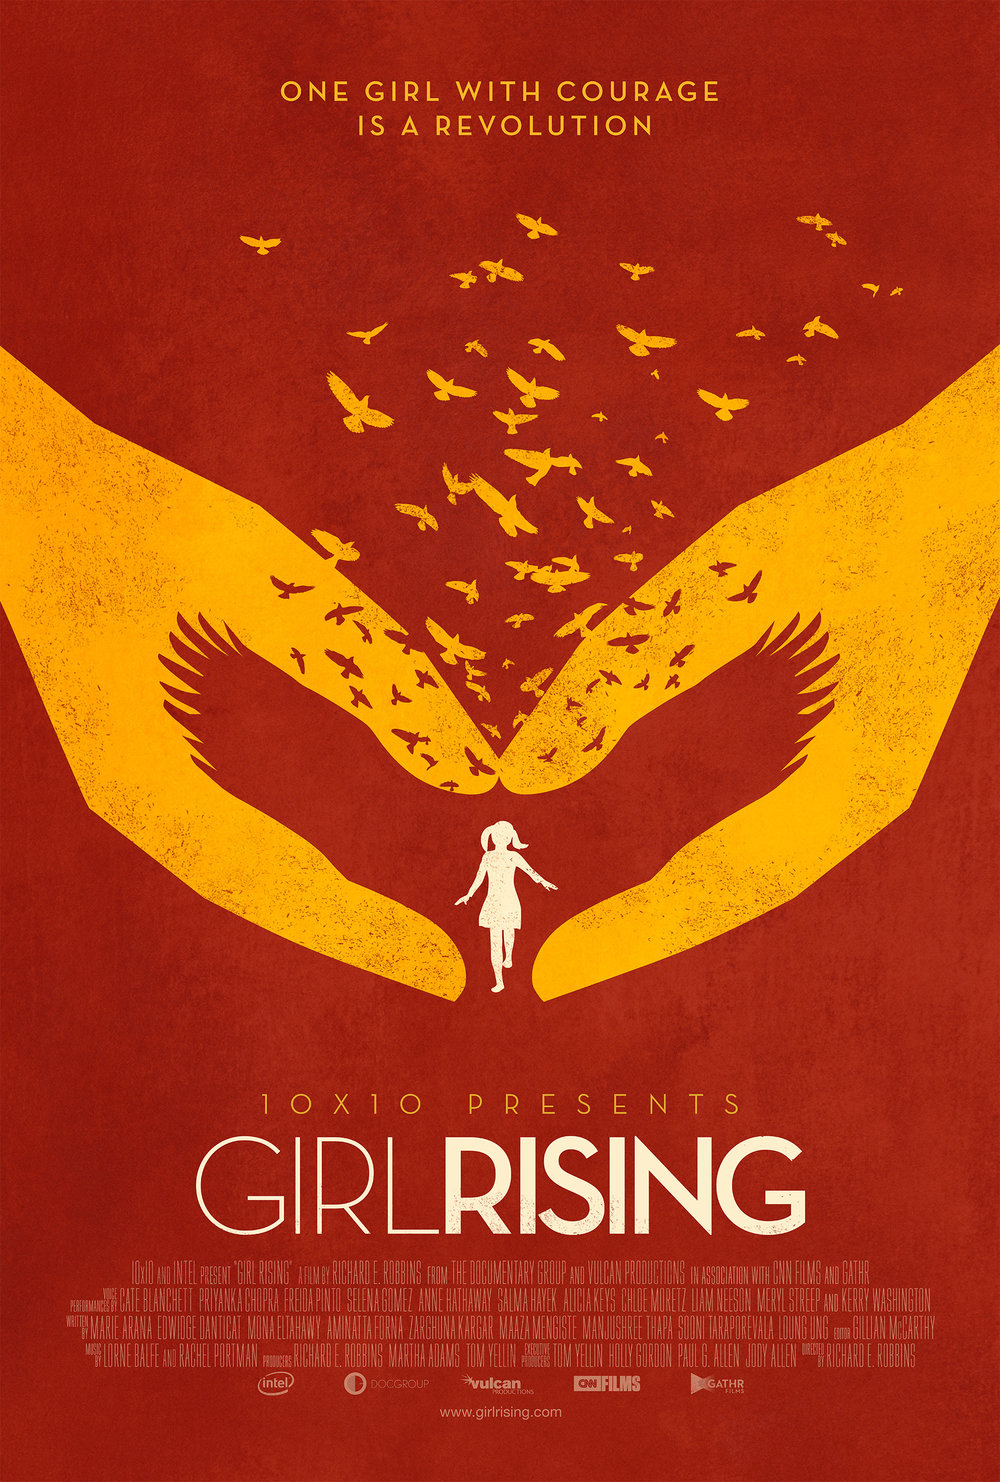 Girl Rising    This powerful film spotlights the unforgettable stories of girls living in the developing world, striving beyond circumstance and overcoming nearly insurmountable odds to achieve their dreams...   Read More